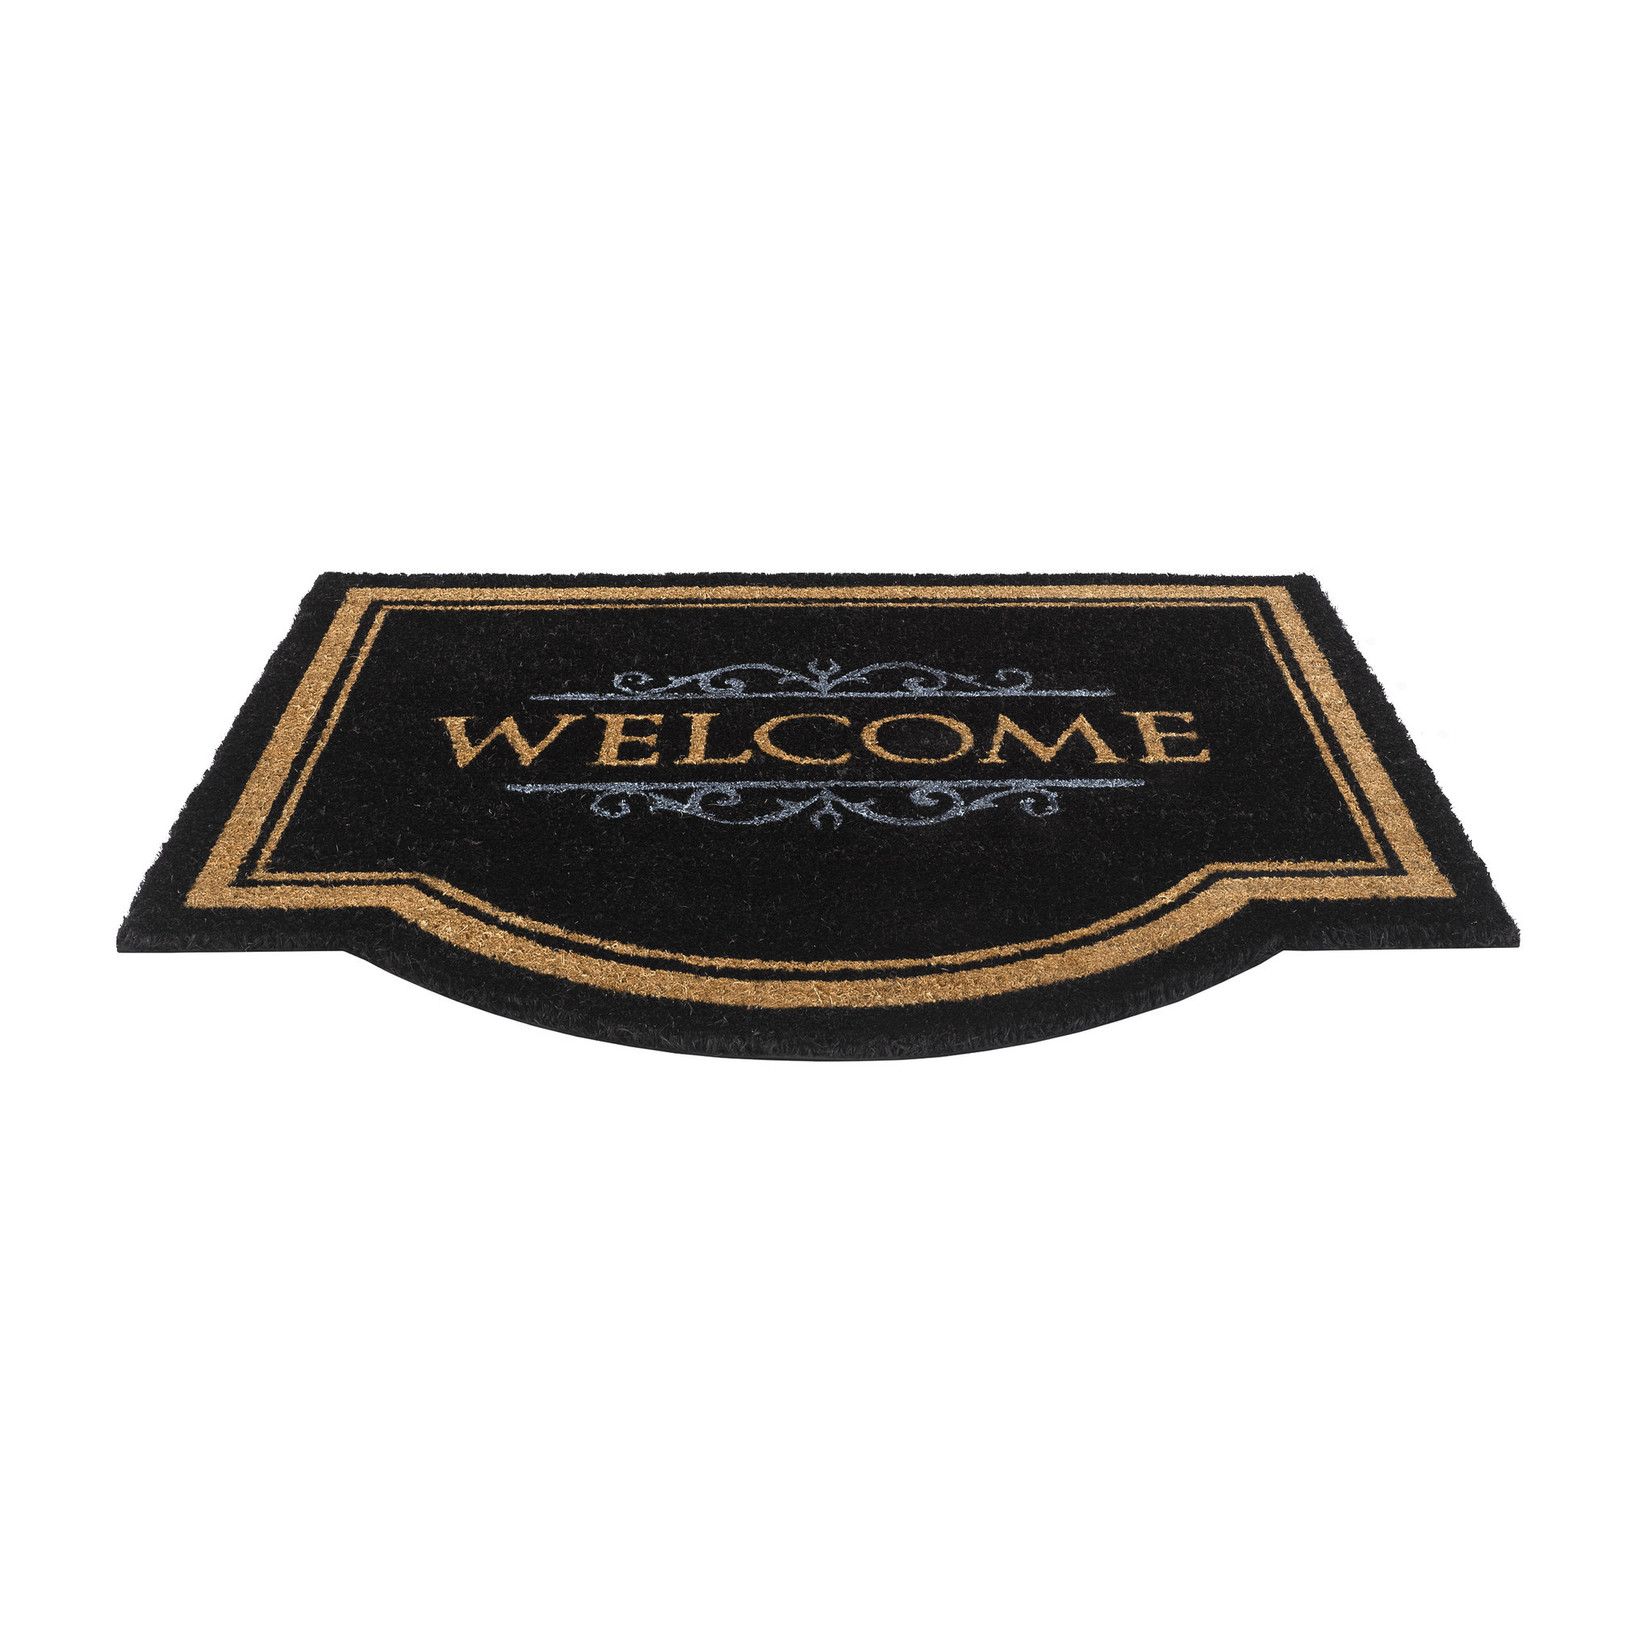 Hamat Ruco Coco Classic Welcome 60x80cm Black